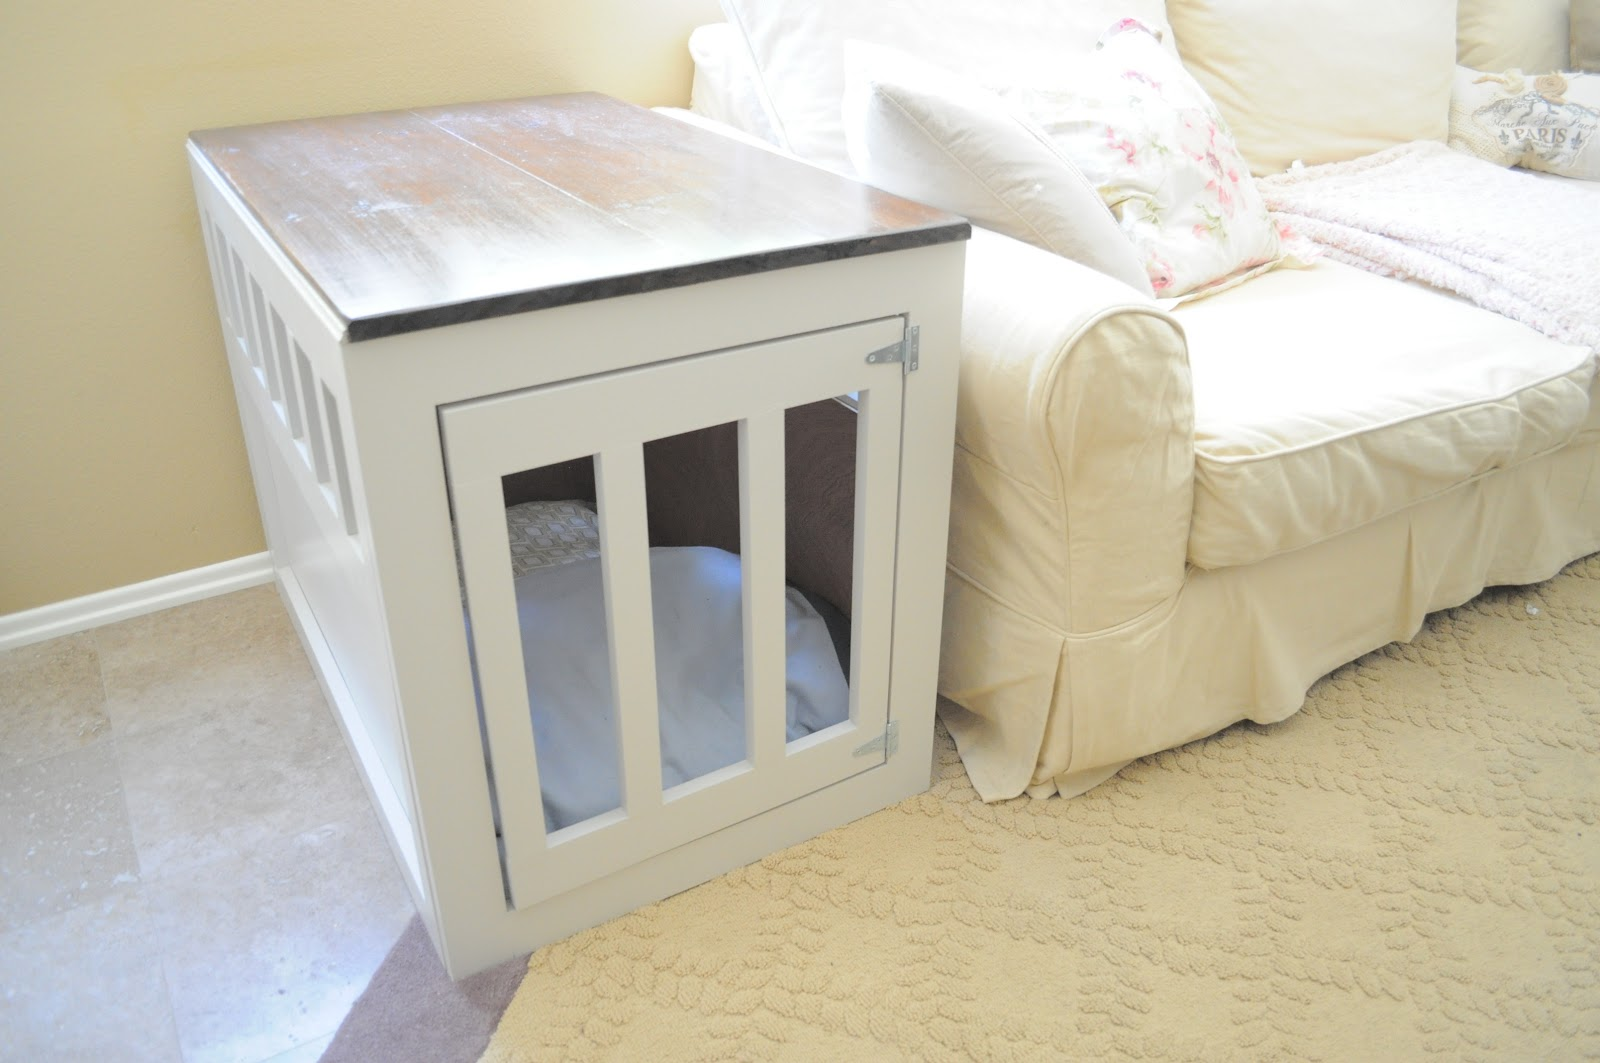 Diy Wooden Dog Crate Plans Pdf Woodworking